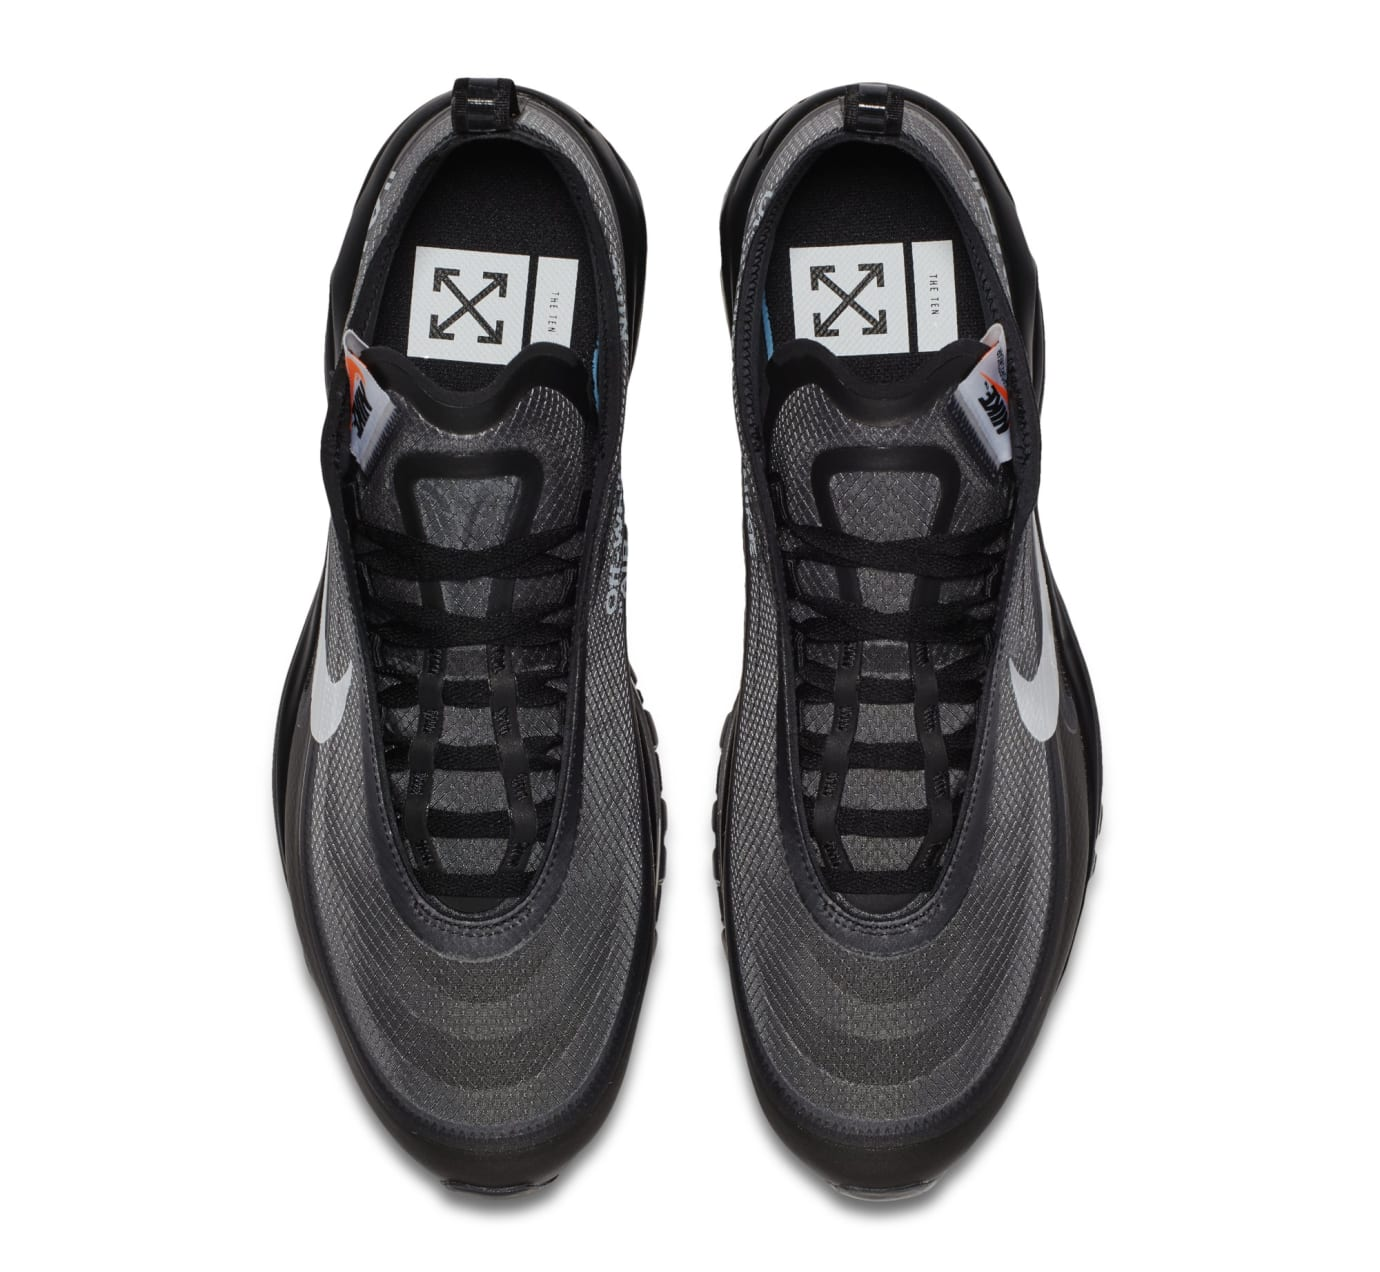 Off White x Nike Air Max 97 OG BlackConeBlackWhite AJ4585